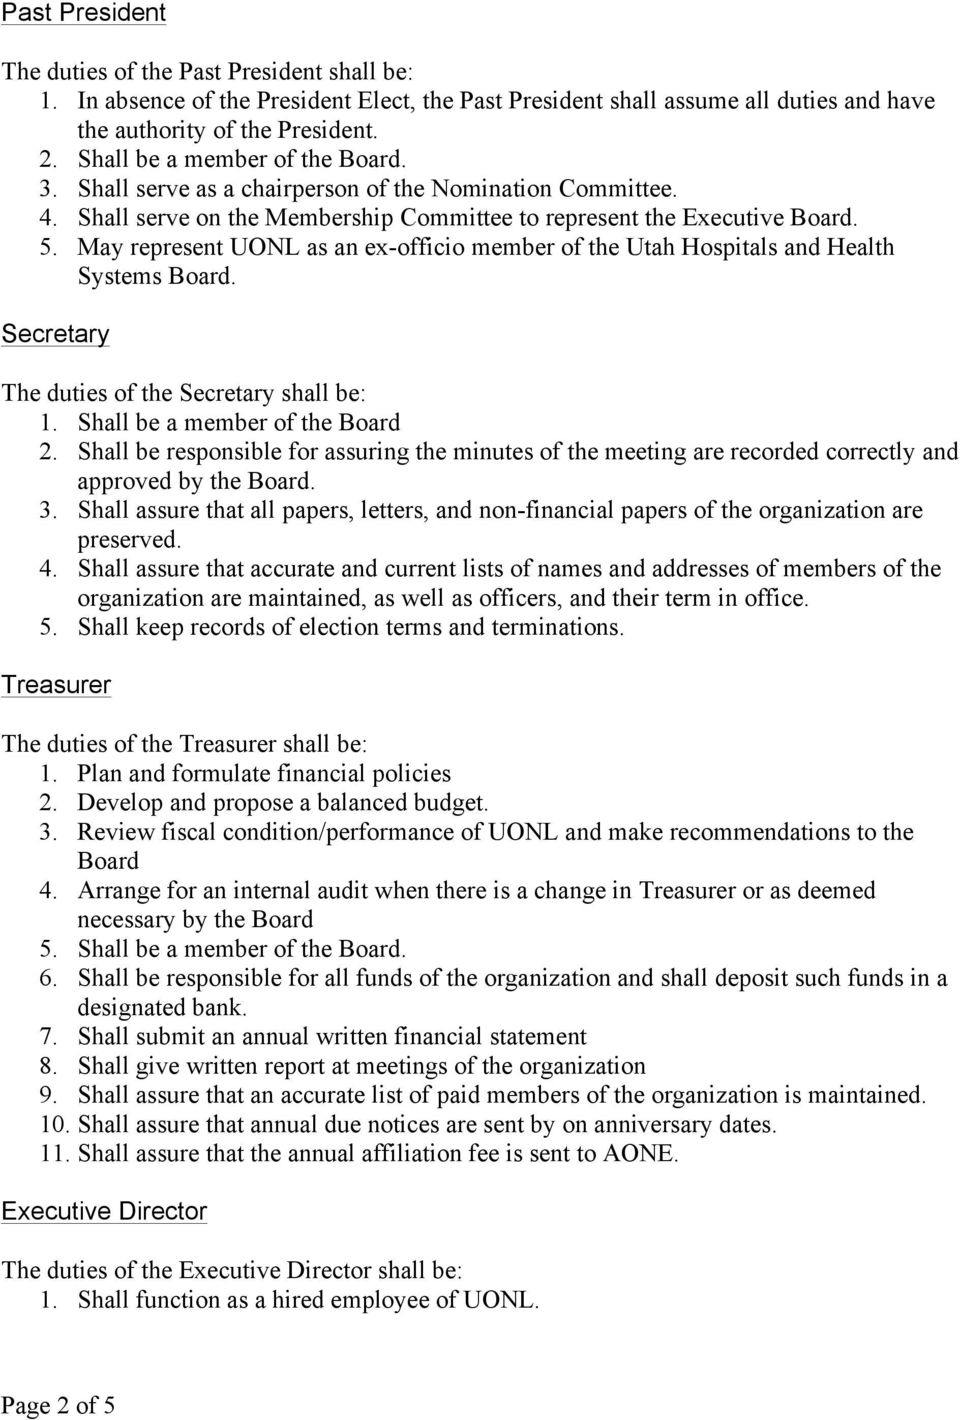 May represent UONL as an ex-officio member of the Utah Hospitals and Health Systems Board. Secretary The duties of the Secretary shall be: 1. Shall be a member of the Board 2.